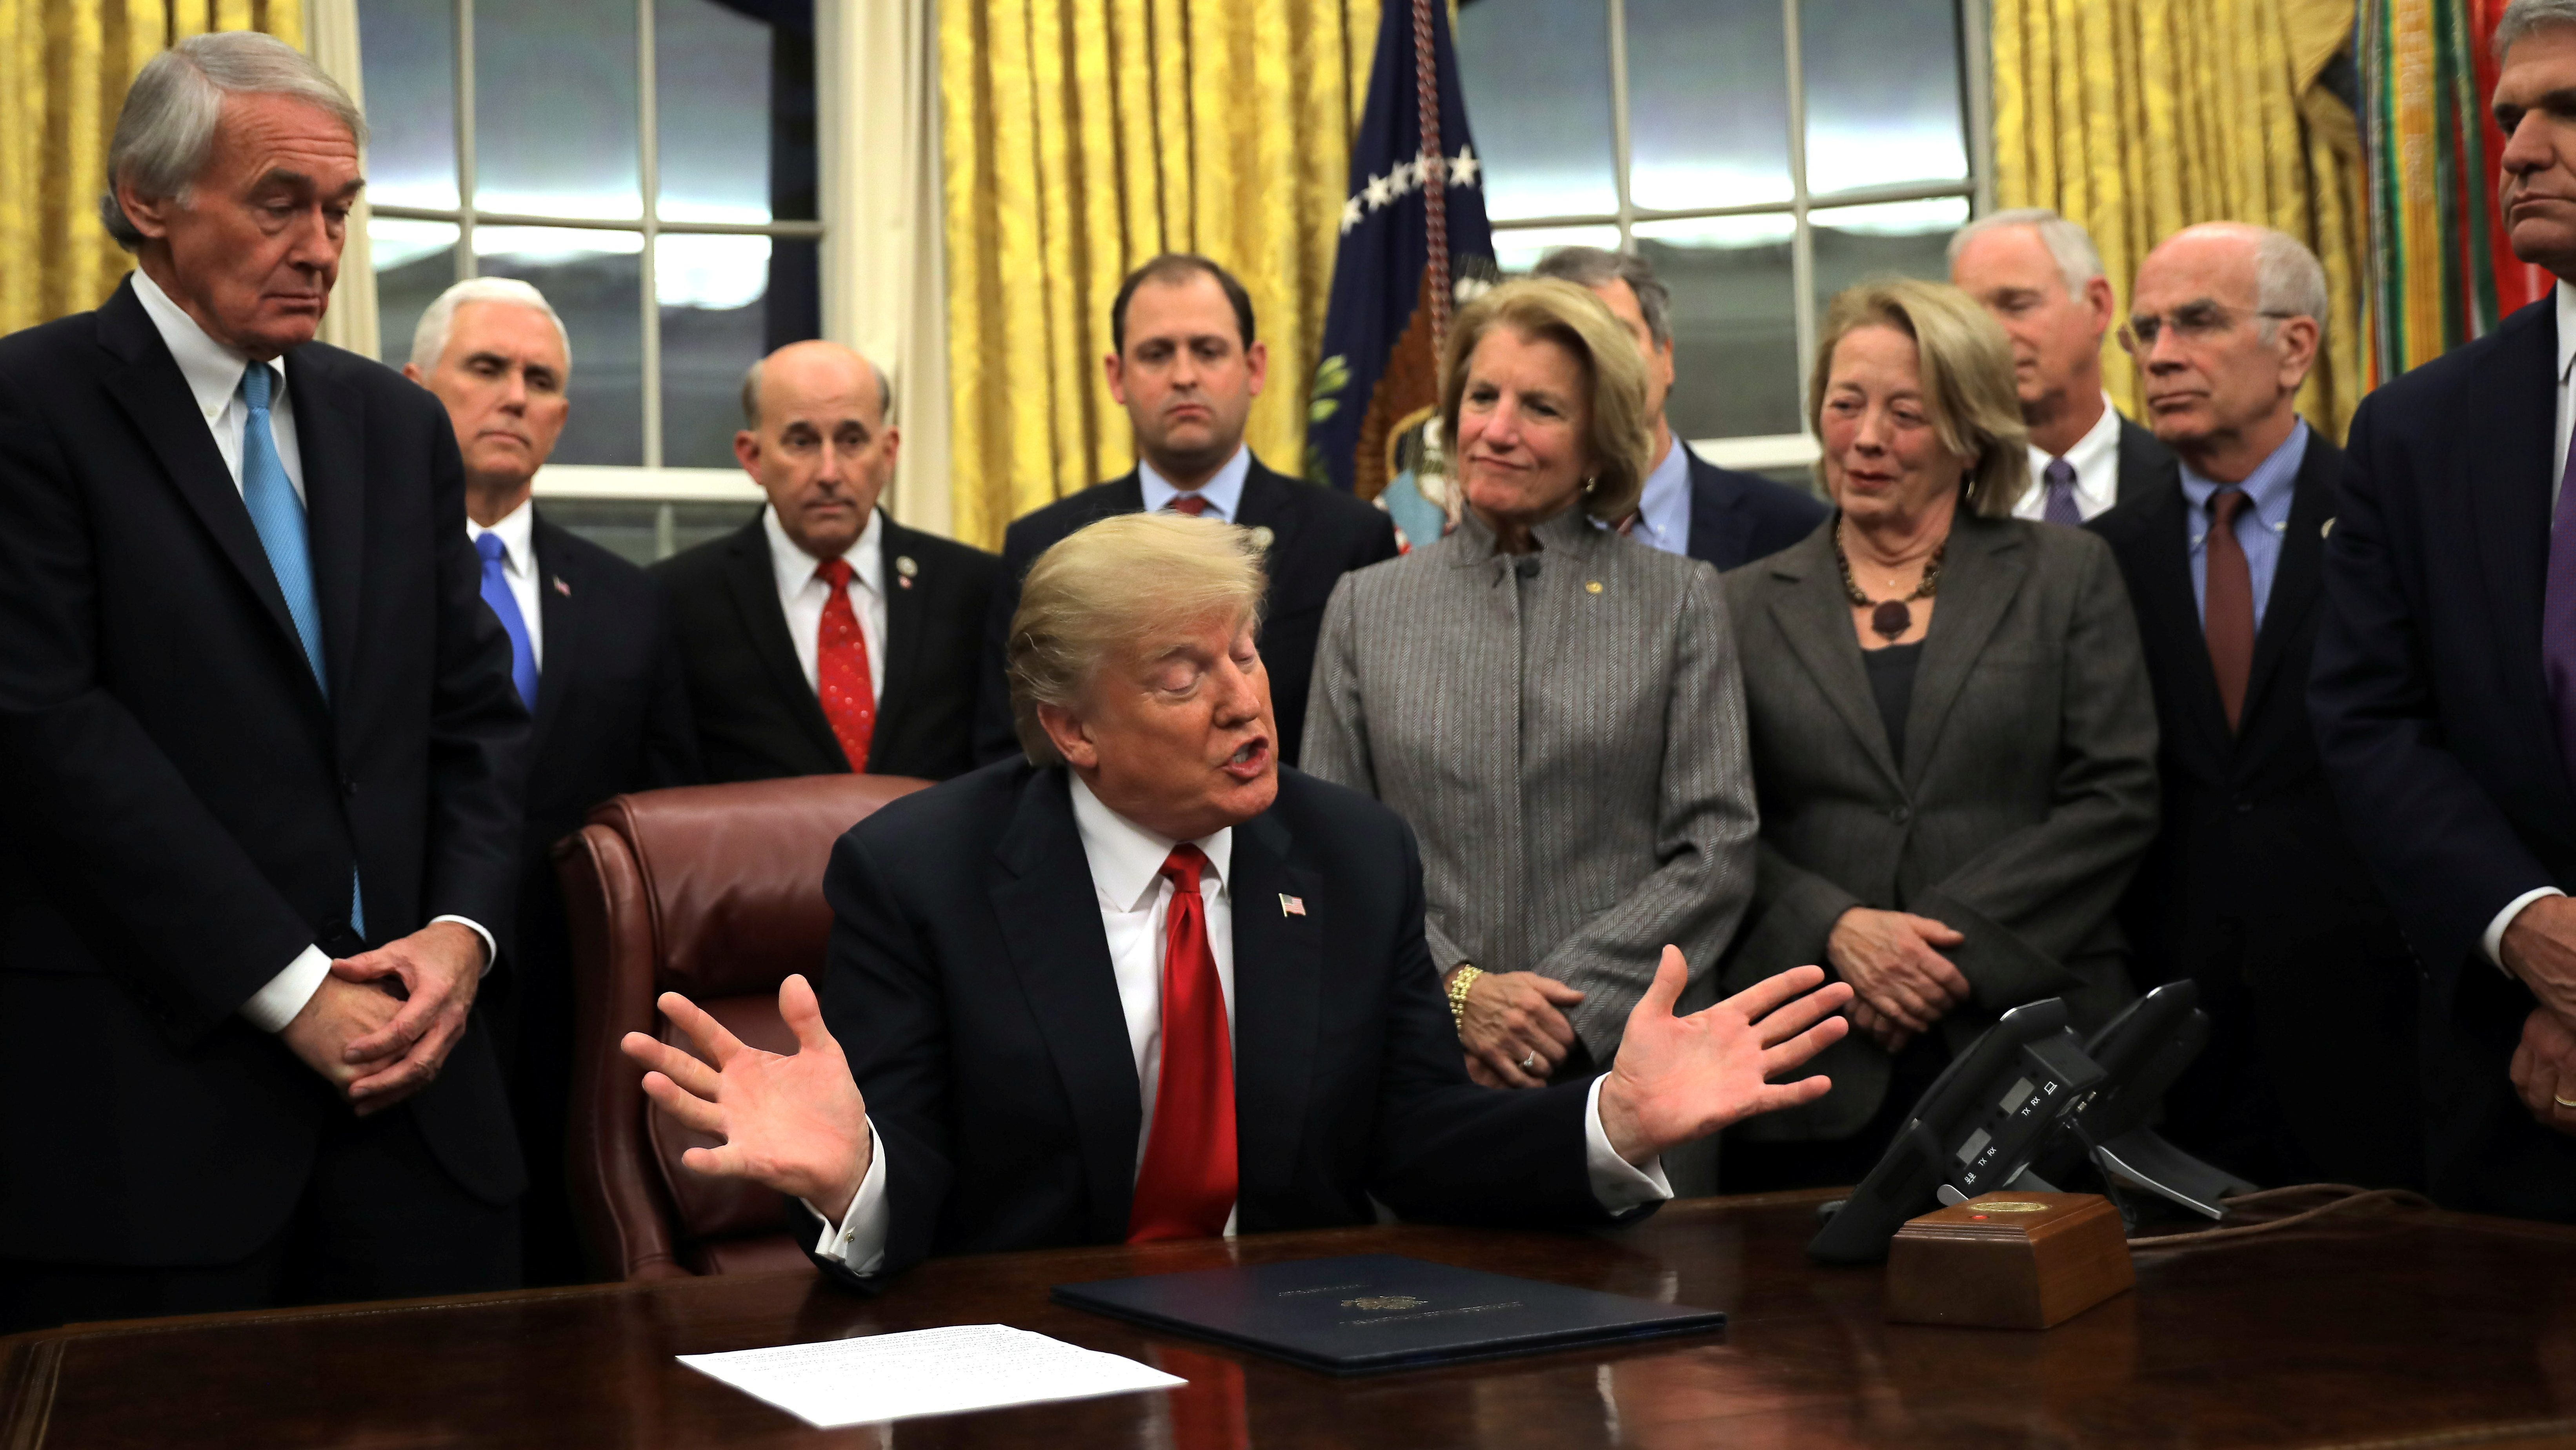 U.S. President Donald Trump speaks during a signing ceremony for the Interdict Act into law, to provide Customs and Border Protection agents with the latest screening technology on the fight against the opioid crisis, in the Oval Office of the White House in Washington D.C., U.S., January 10, 2018.